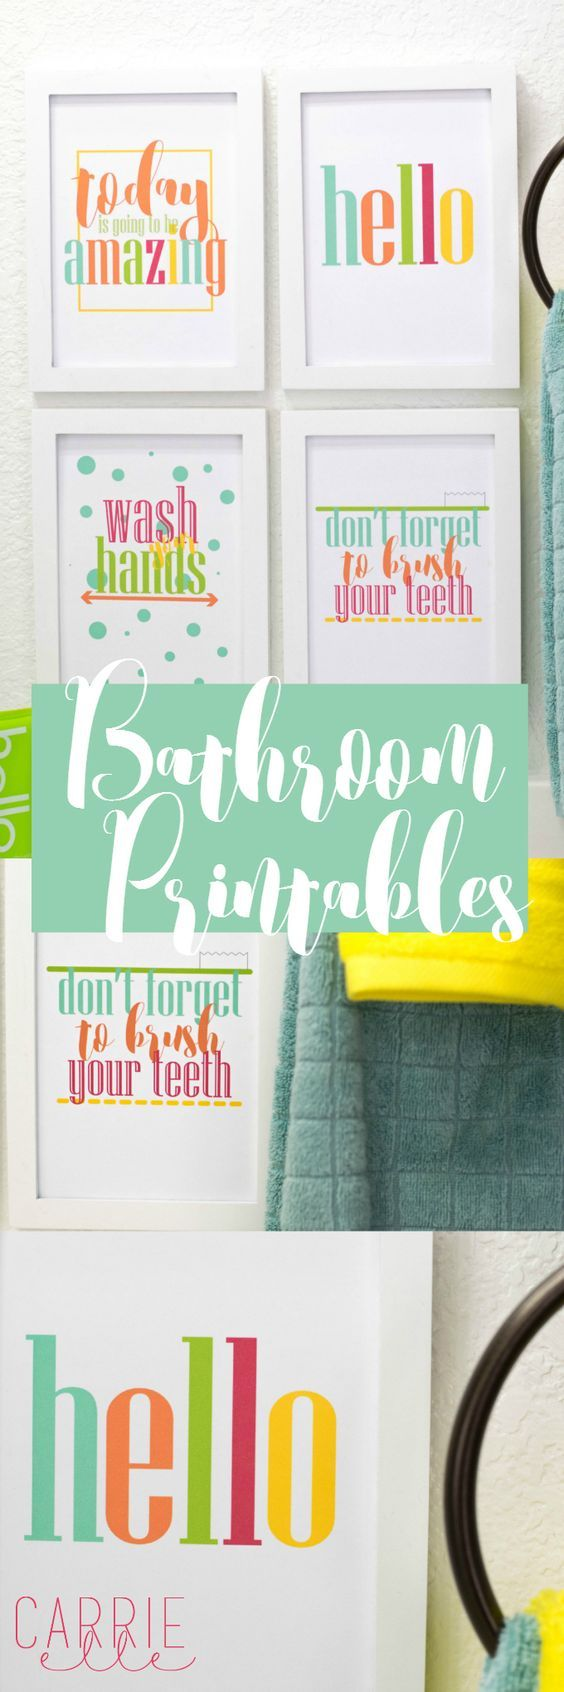 best 25 kids bathroom art ideas on pinterest bathroom wall art brighten up your bathroom with these cheerful and happy bathroom printables these are great for